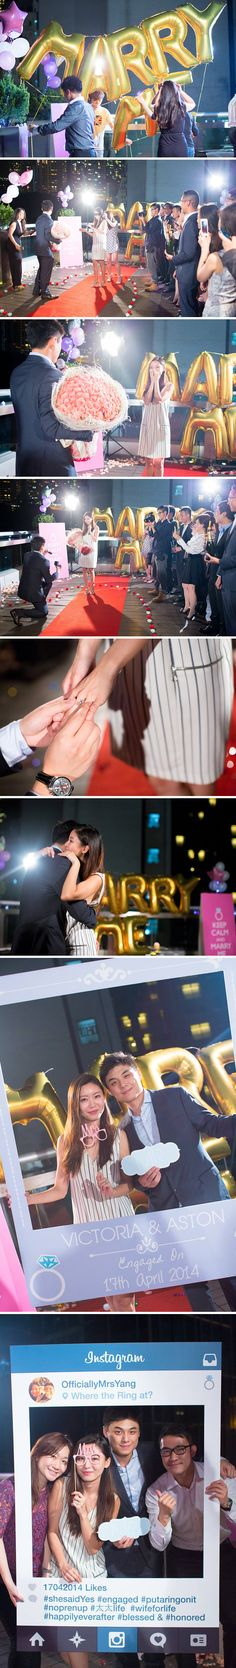 Surprise proposal at a rooftop bar in Hong Kong // Proposal inspiration